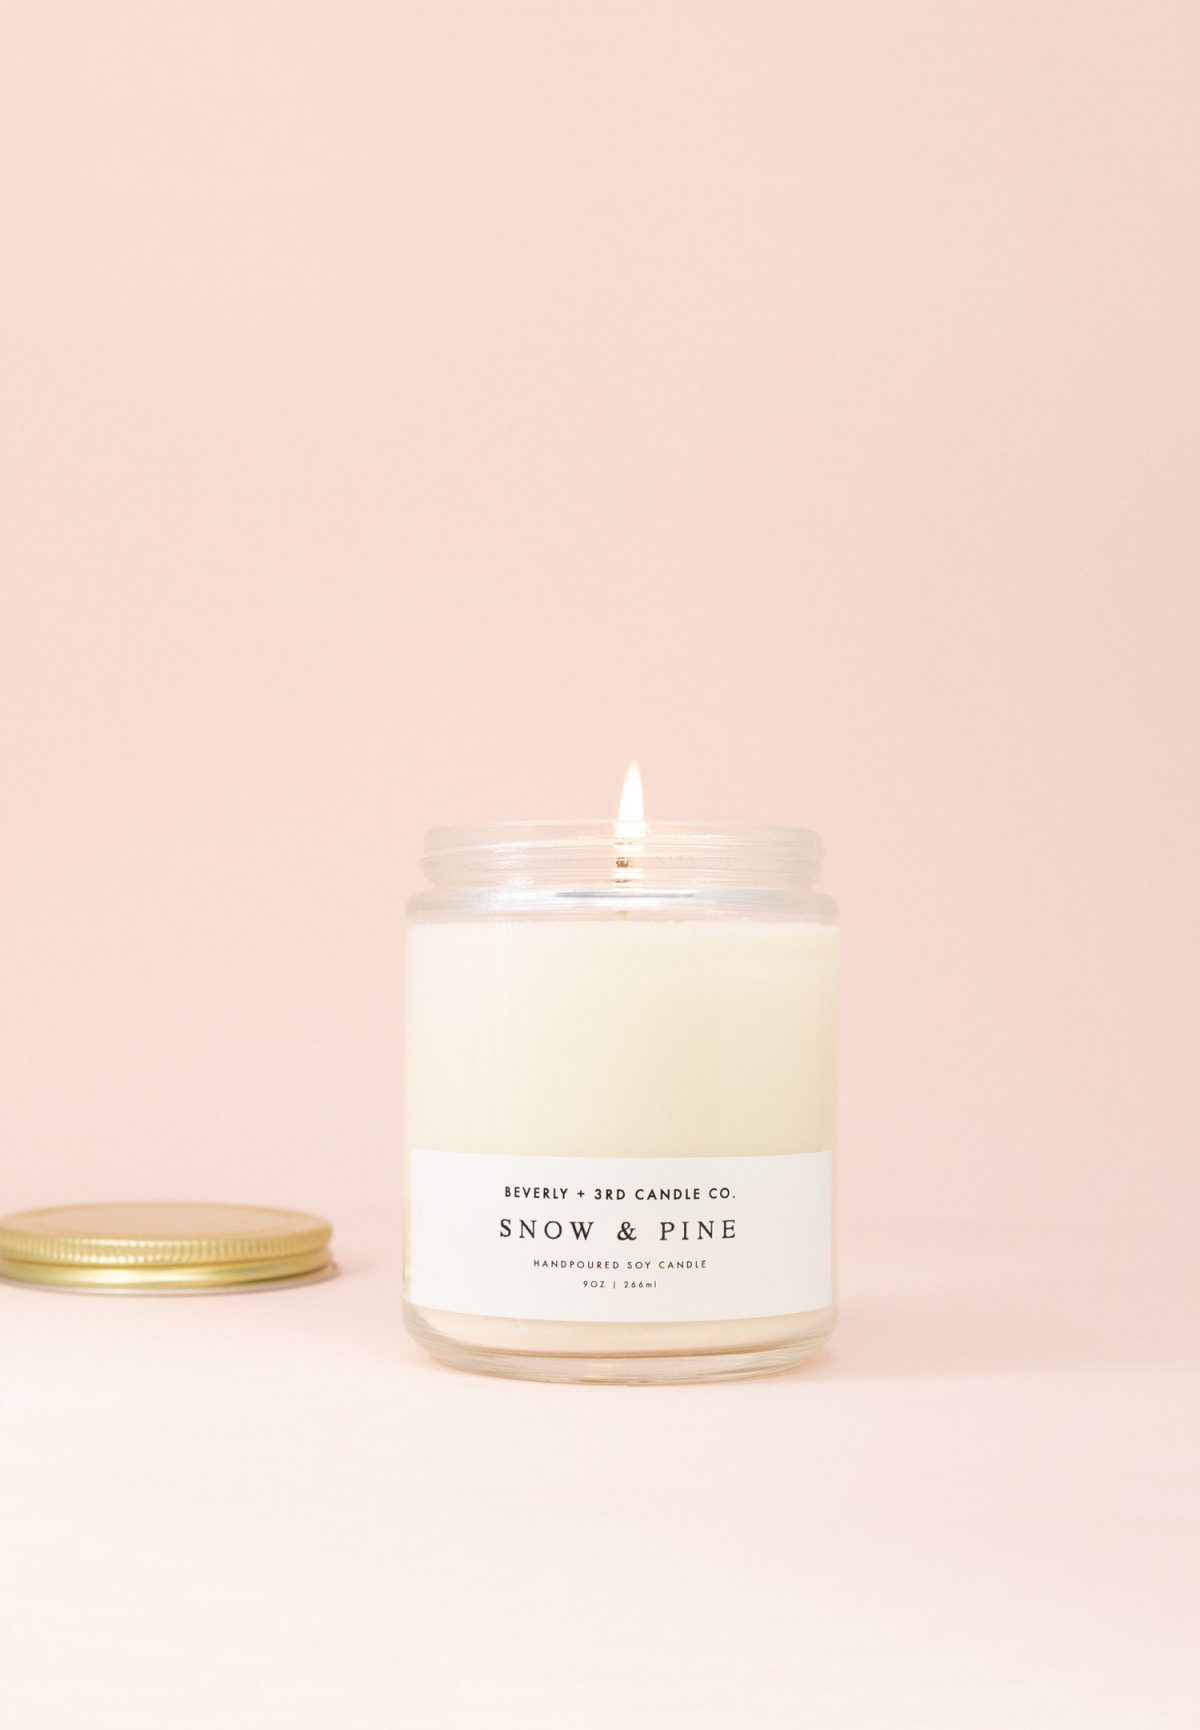 SNOW & PINE Soy Candle   Wood Wick, Scented, Hand Poured   Wholesale, Bulk Order